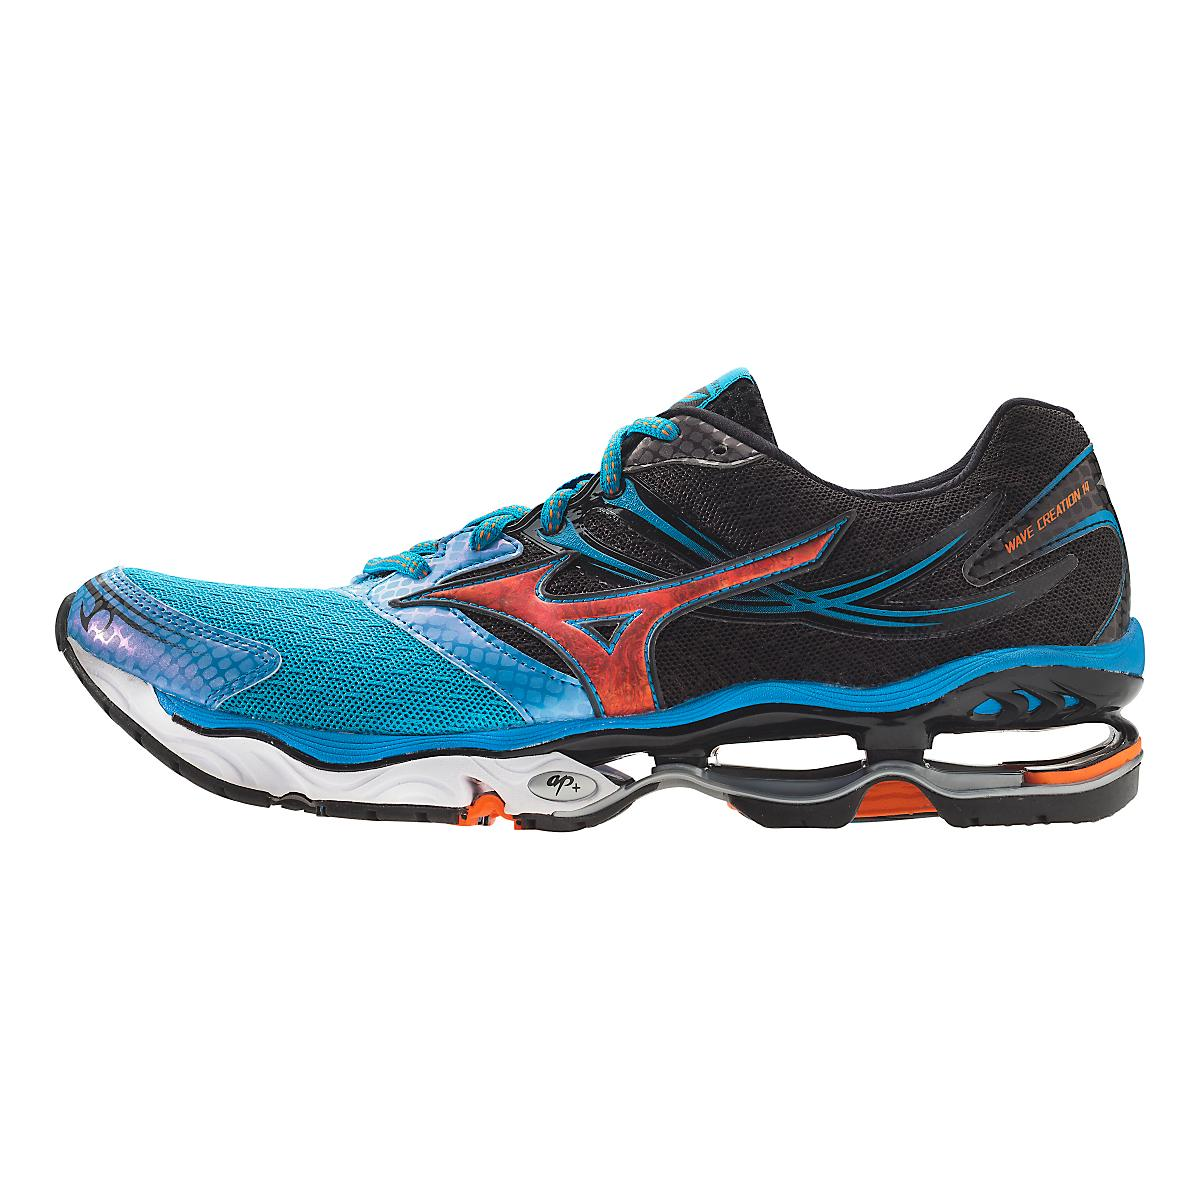 06ffba2c618a3 Mens Mizuno Wave Creation 14 Running Shoe at Road Runner Sports